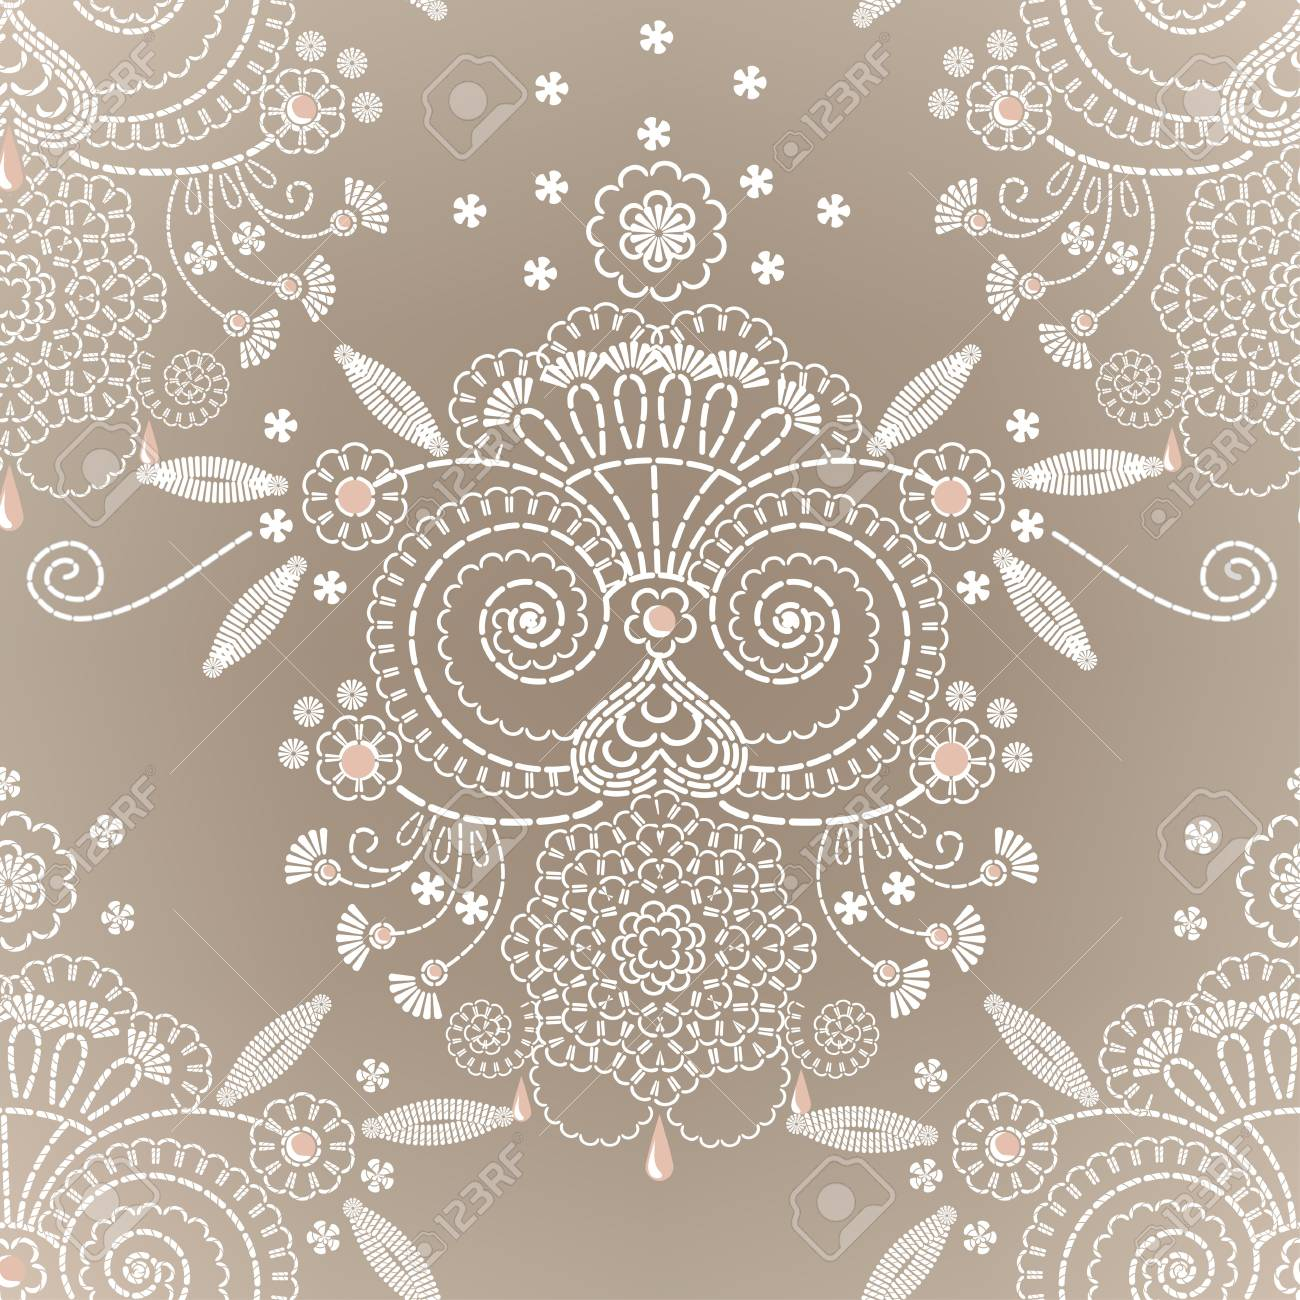 Decorative floral embroidery seamless background. Stock Vector - 13003928